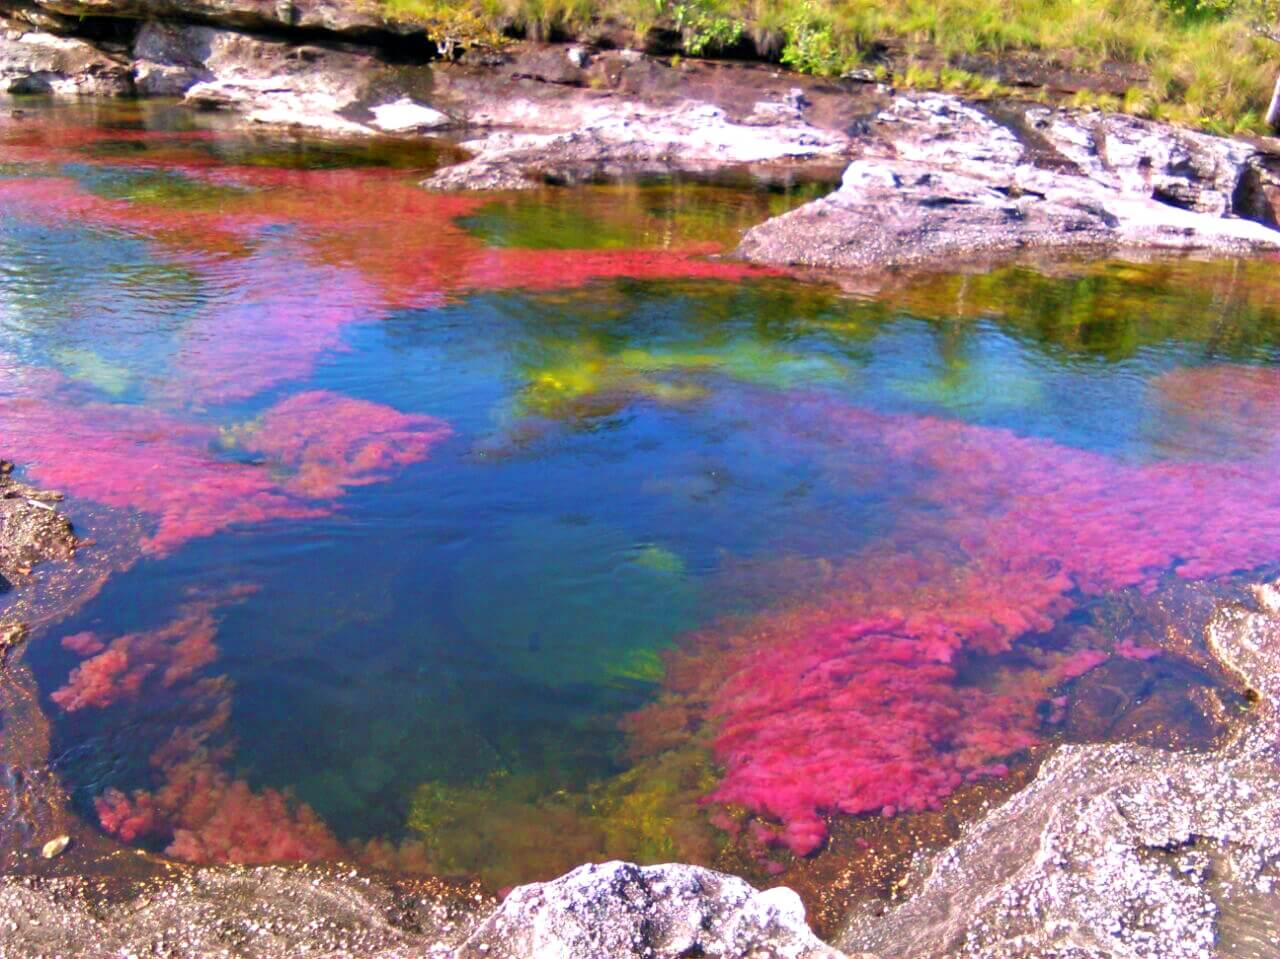 Cano cristales colombia tours macarena meta rainbow river llanos colombian (10)